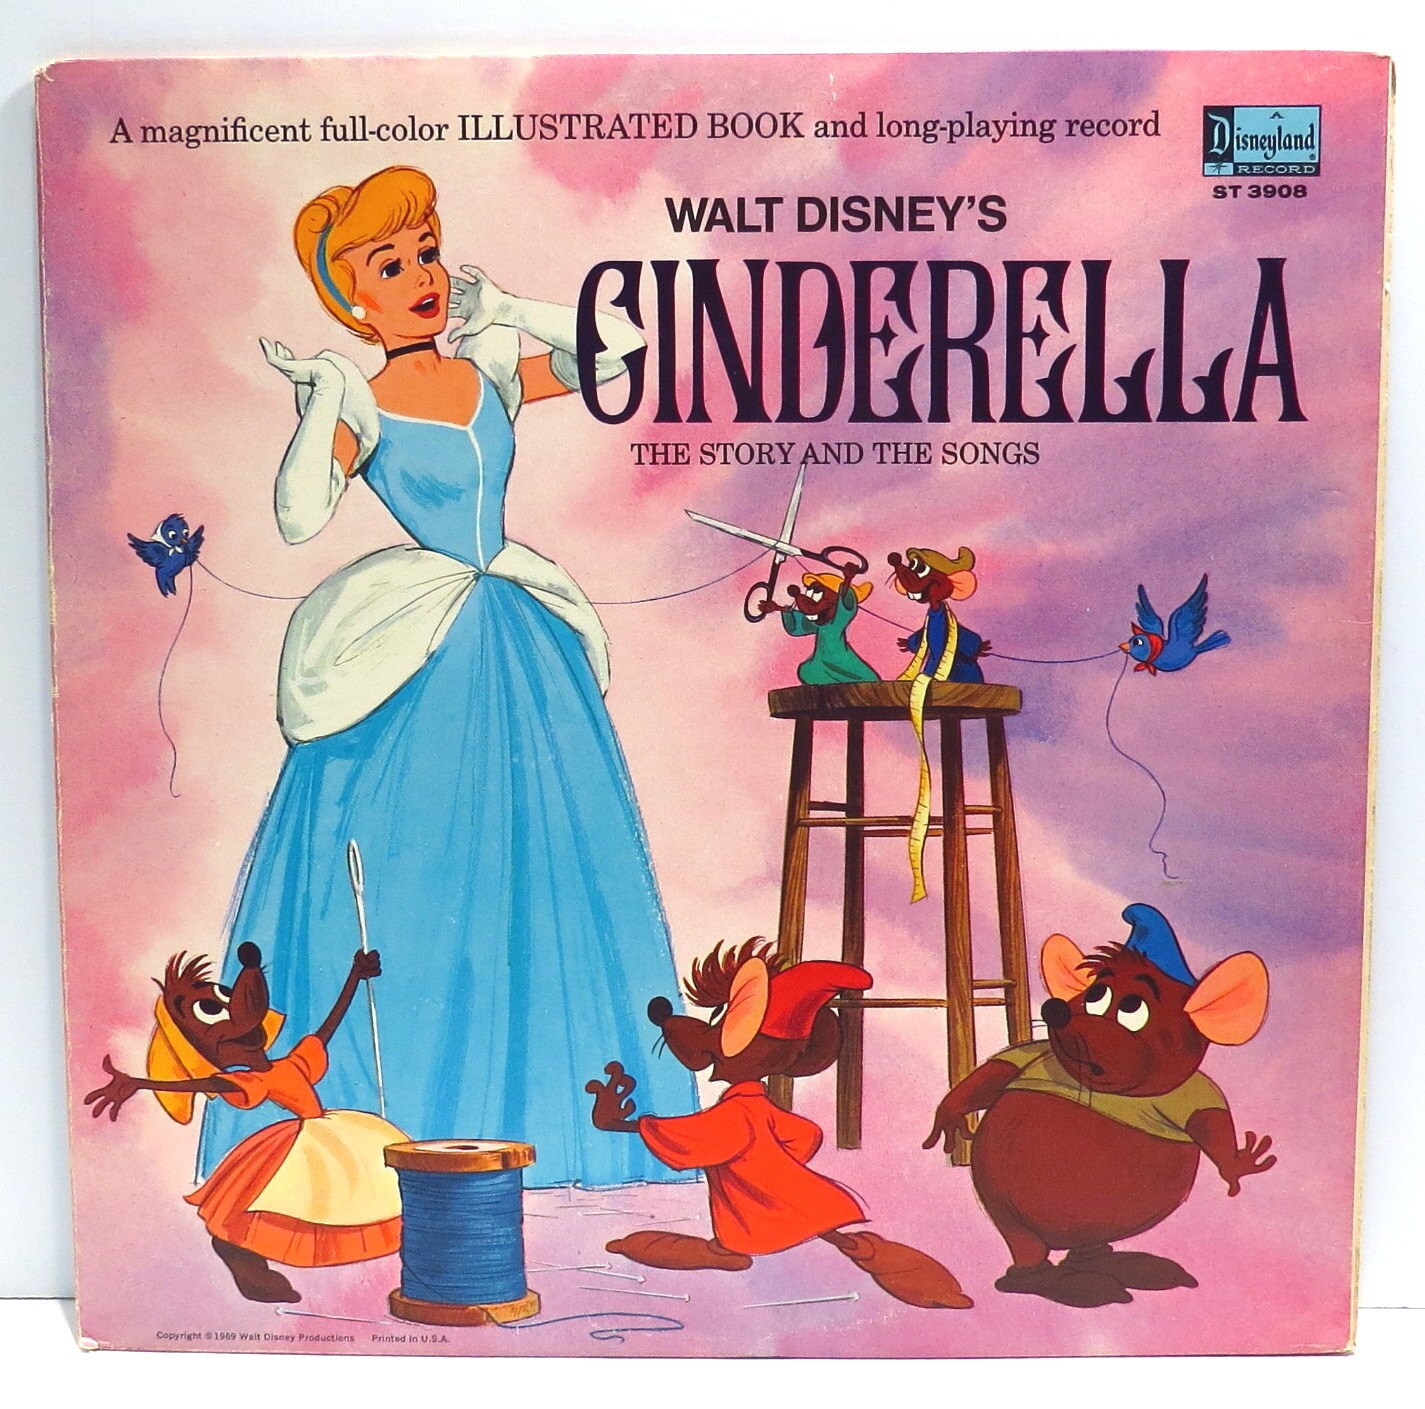 Cinderella 2 Album Cover Purse Custom Made Vintage Record